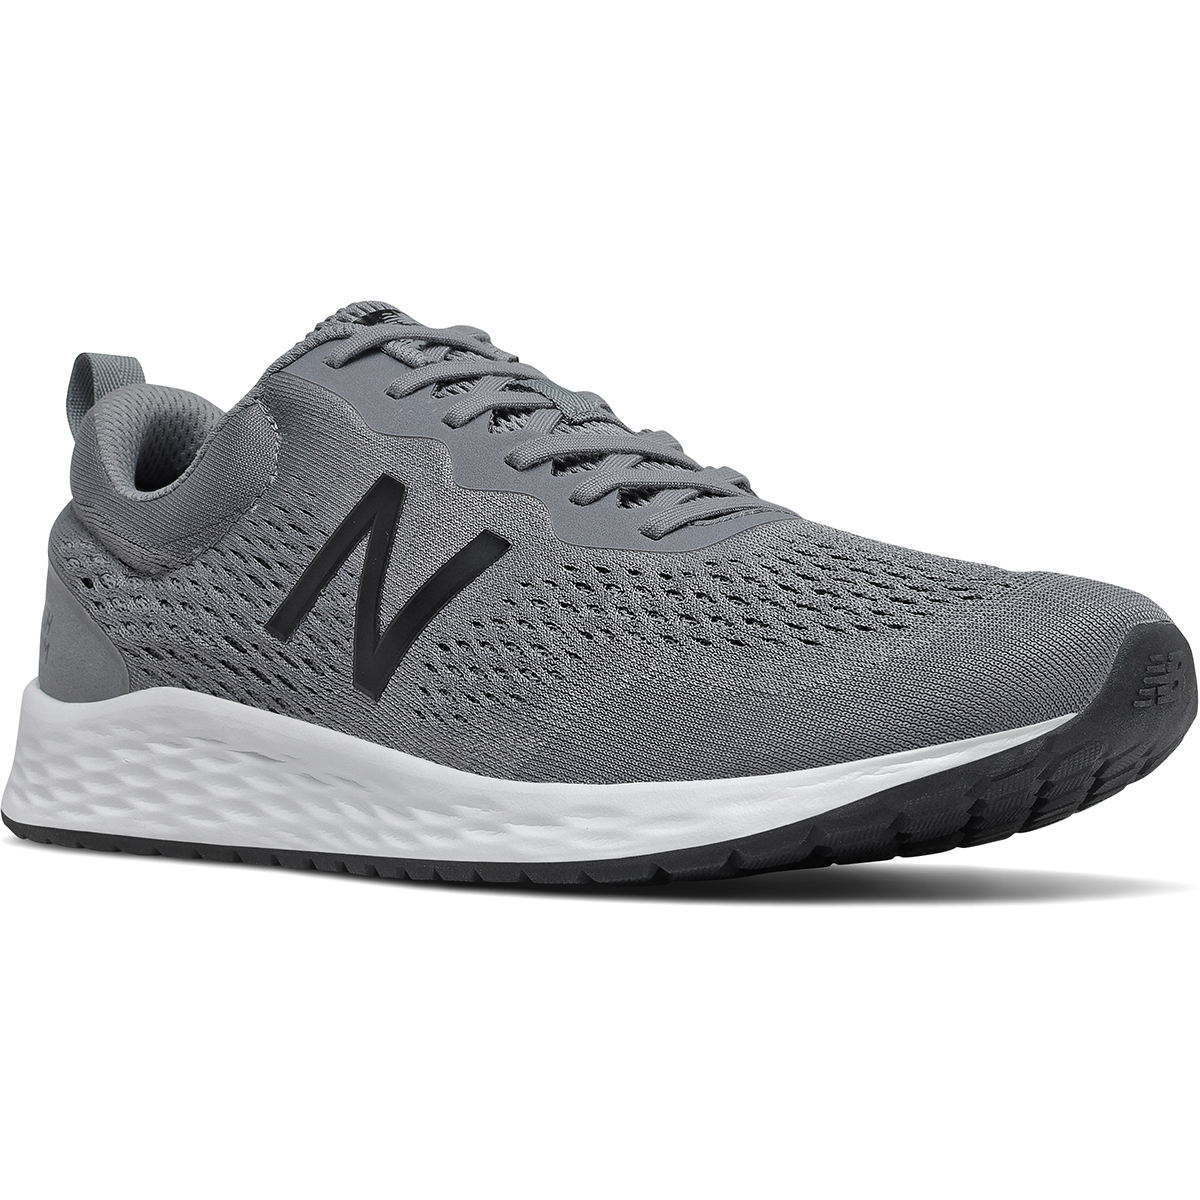 New Balance Men's Fresh Foam Arishi V3 Running Shoe - Black, 13